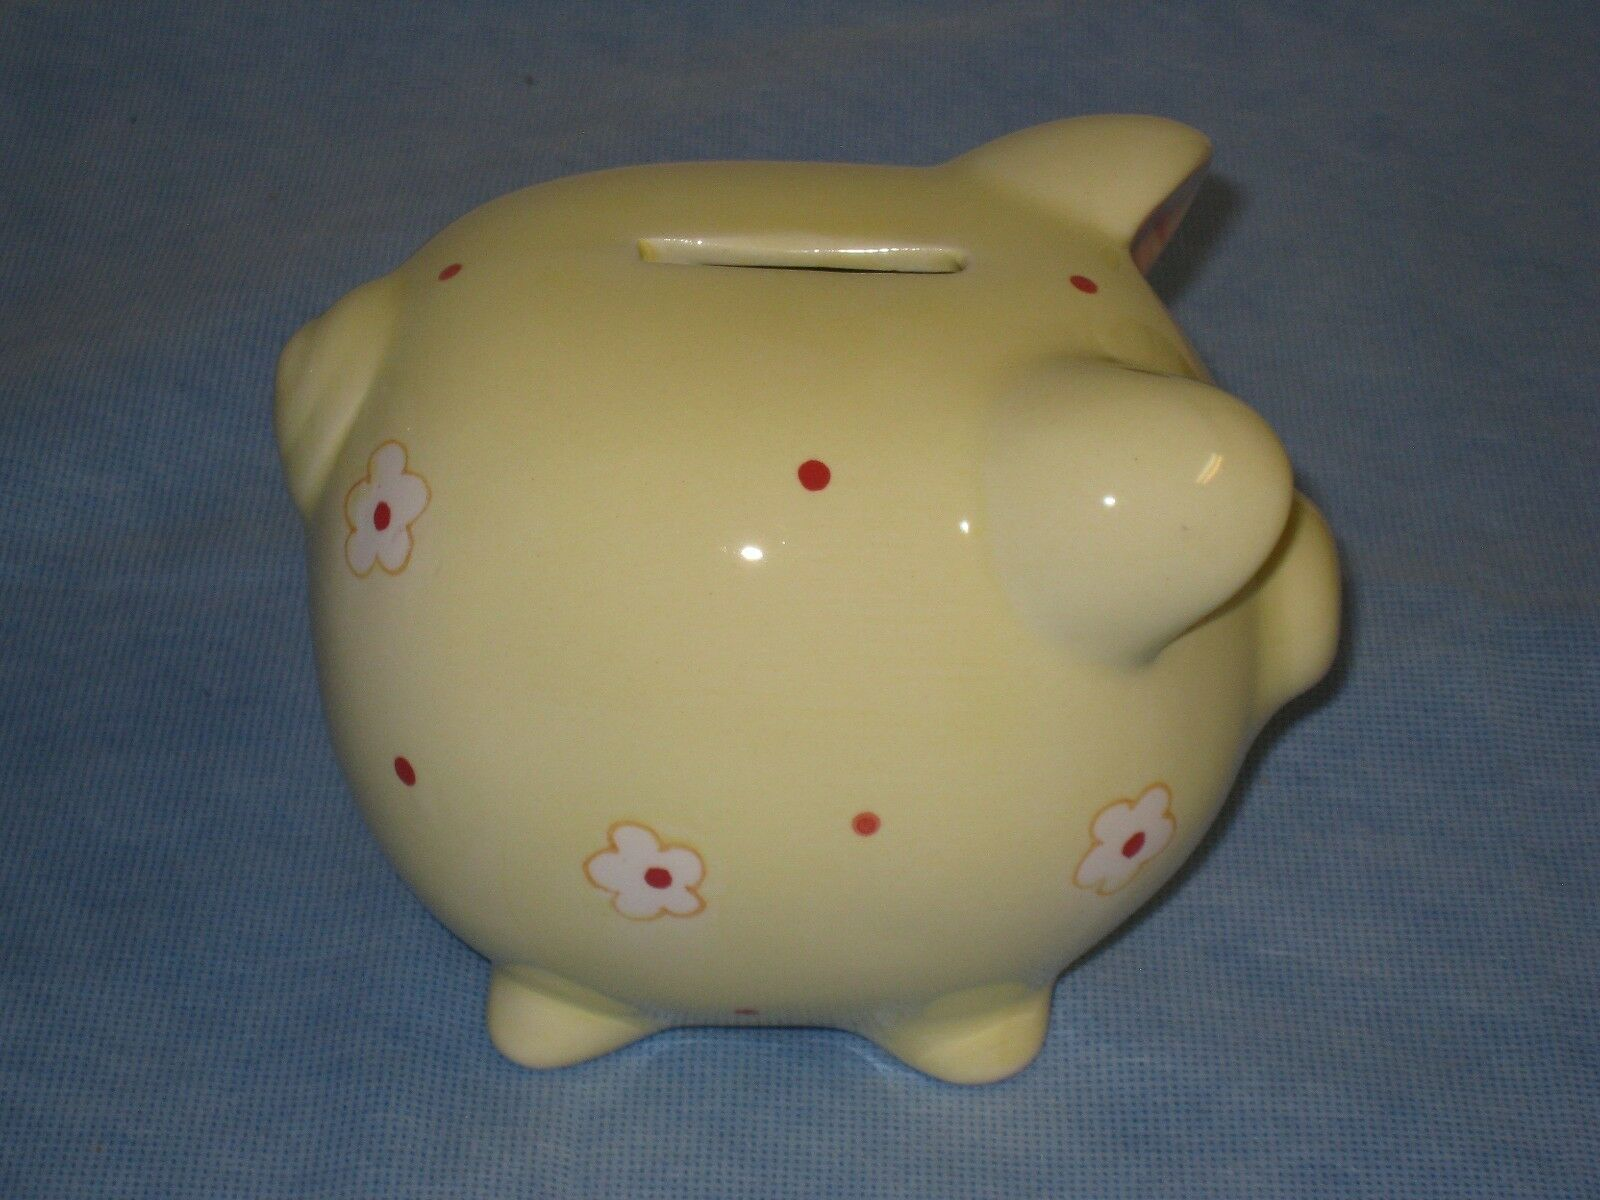 Vintage Yellow Porcelain Color with Flowers and Dots Pig Coin Bank